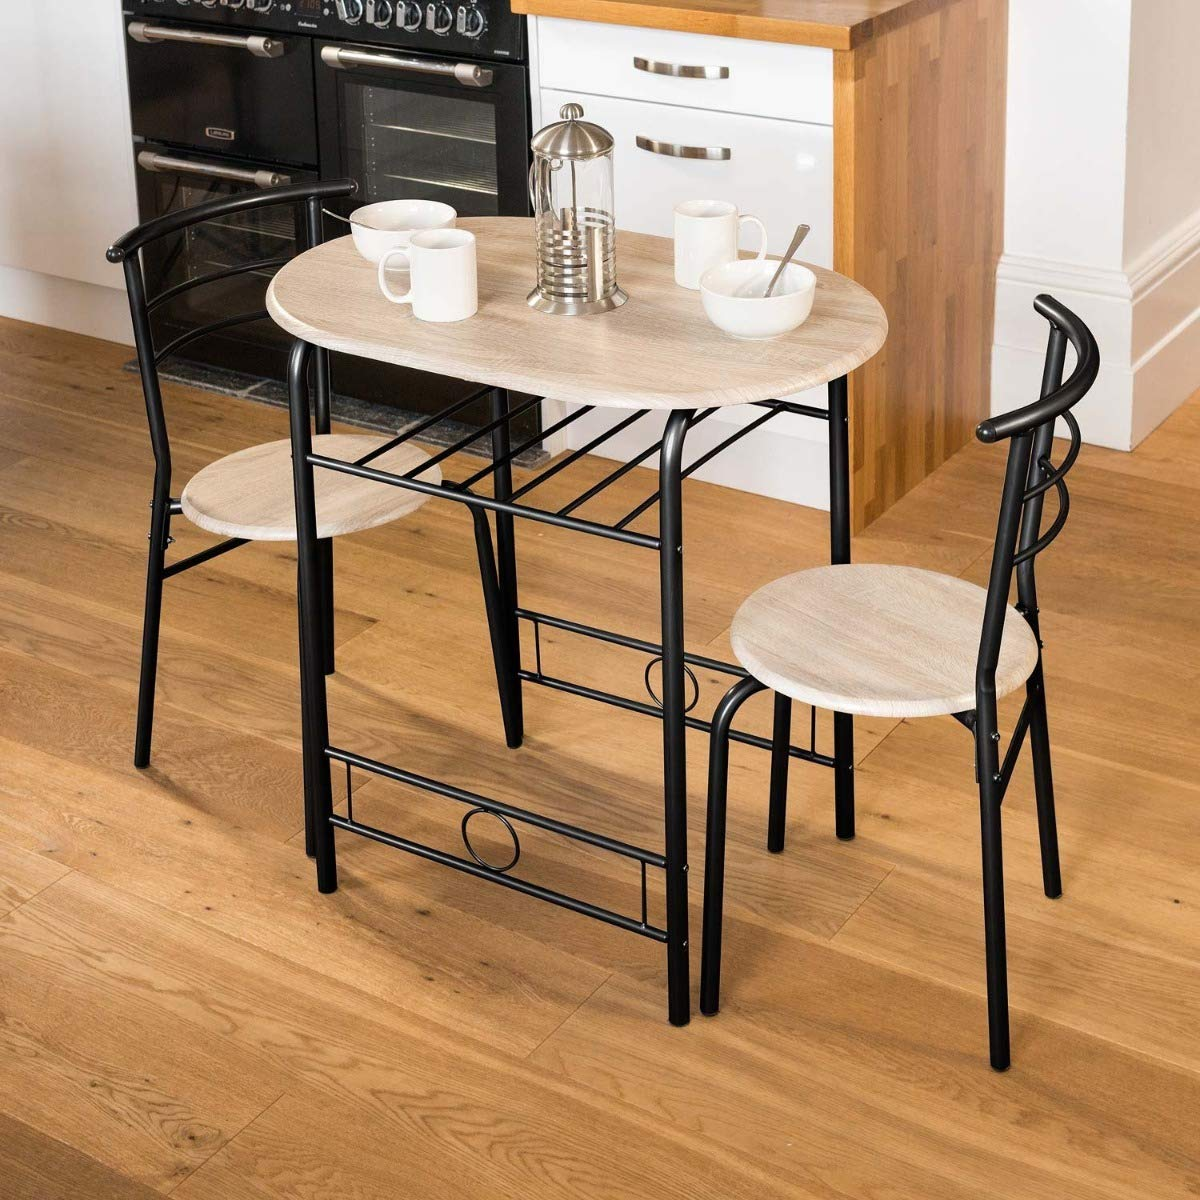 Superb Christow 3 Piece Dining Set Breakfast Bar Kitchen Table Chairs Furniture Download Free Architecture Designs Embacsunscenecom